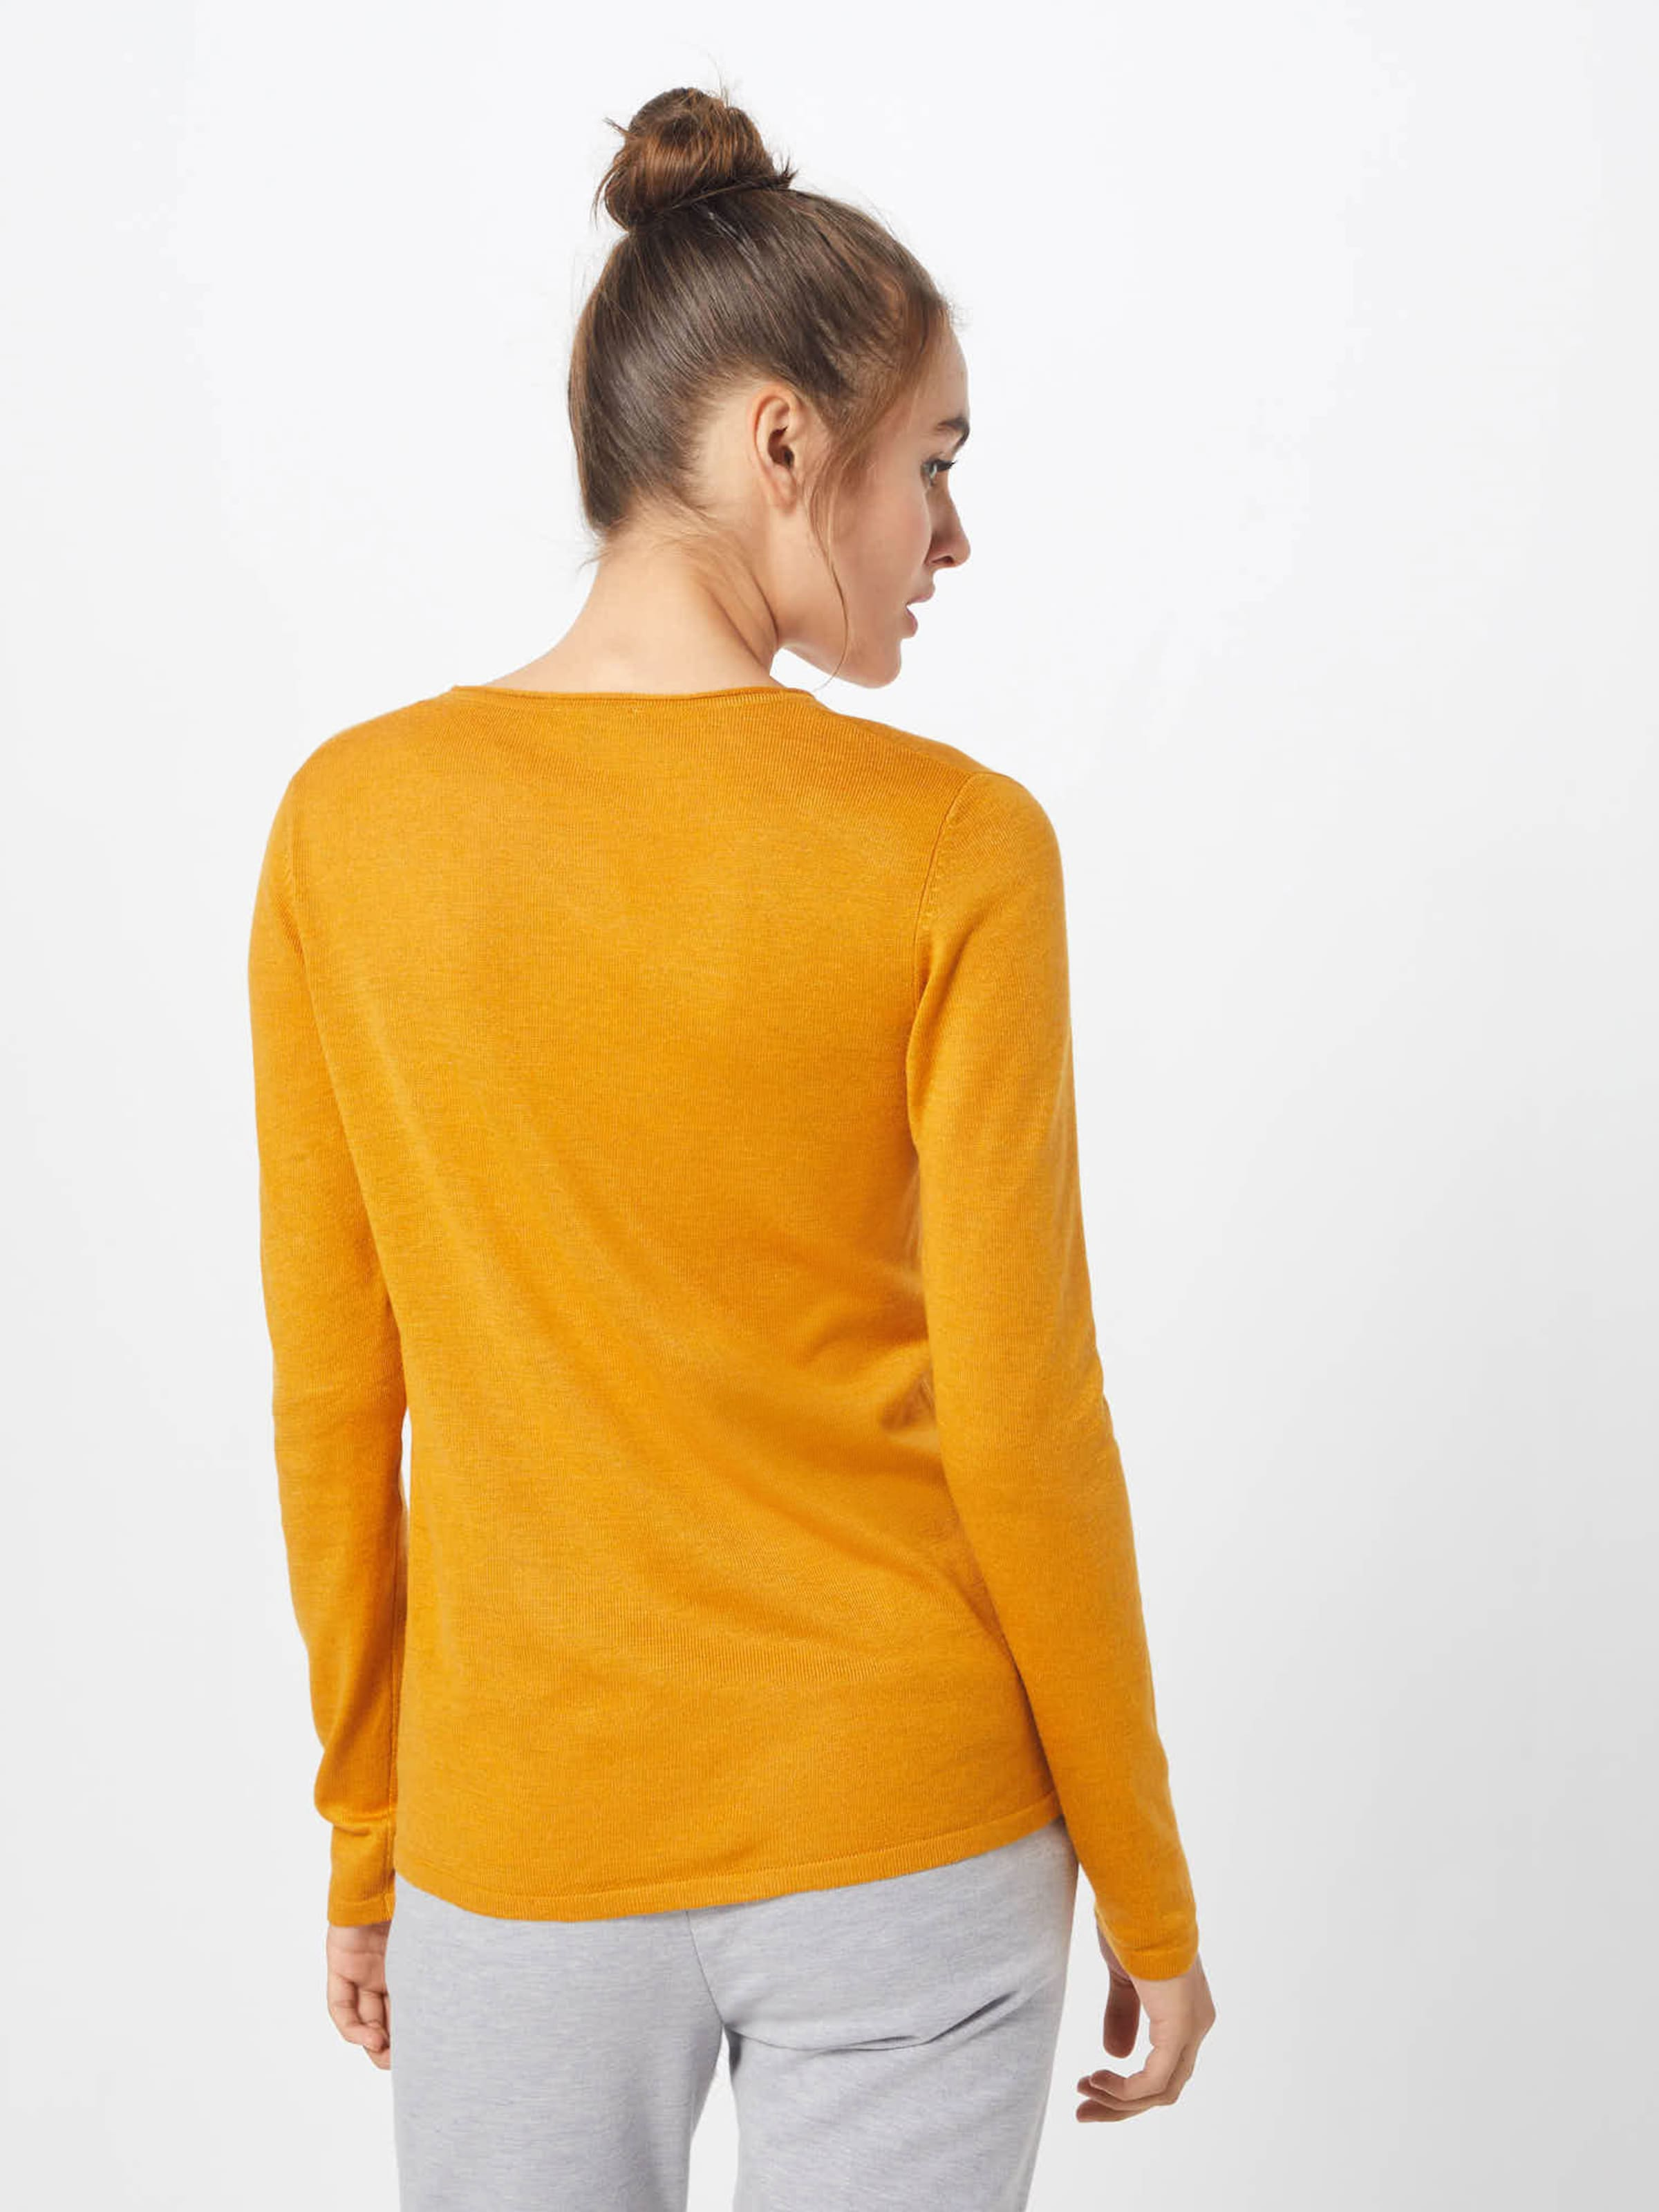 En Jaune Tom Pull over Tailor D'or fyIb7gY6v